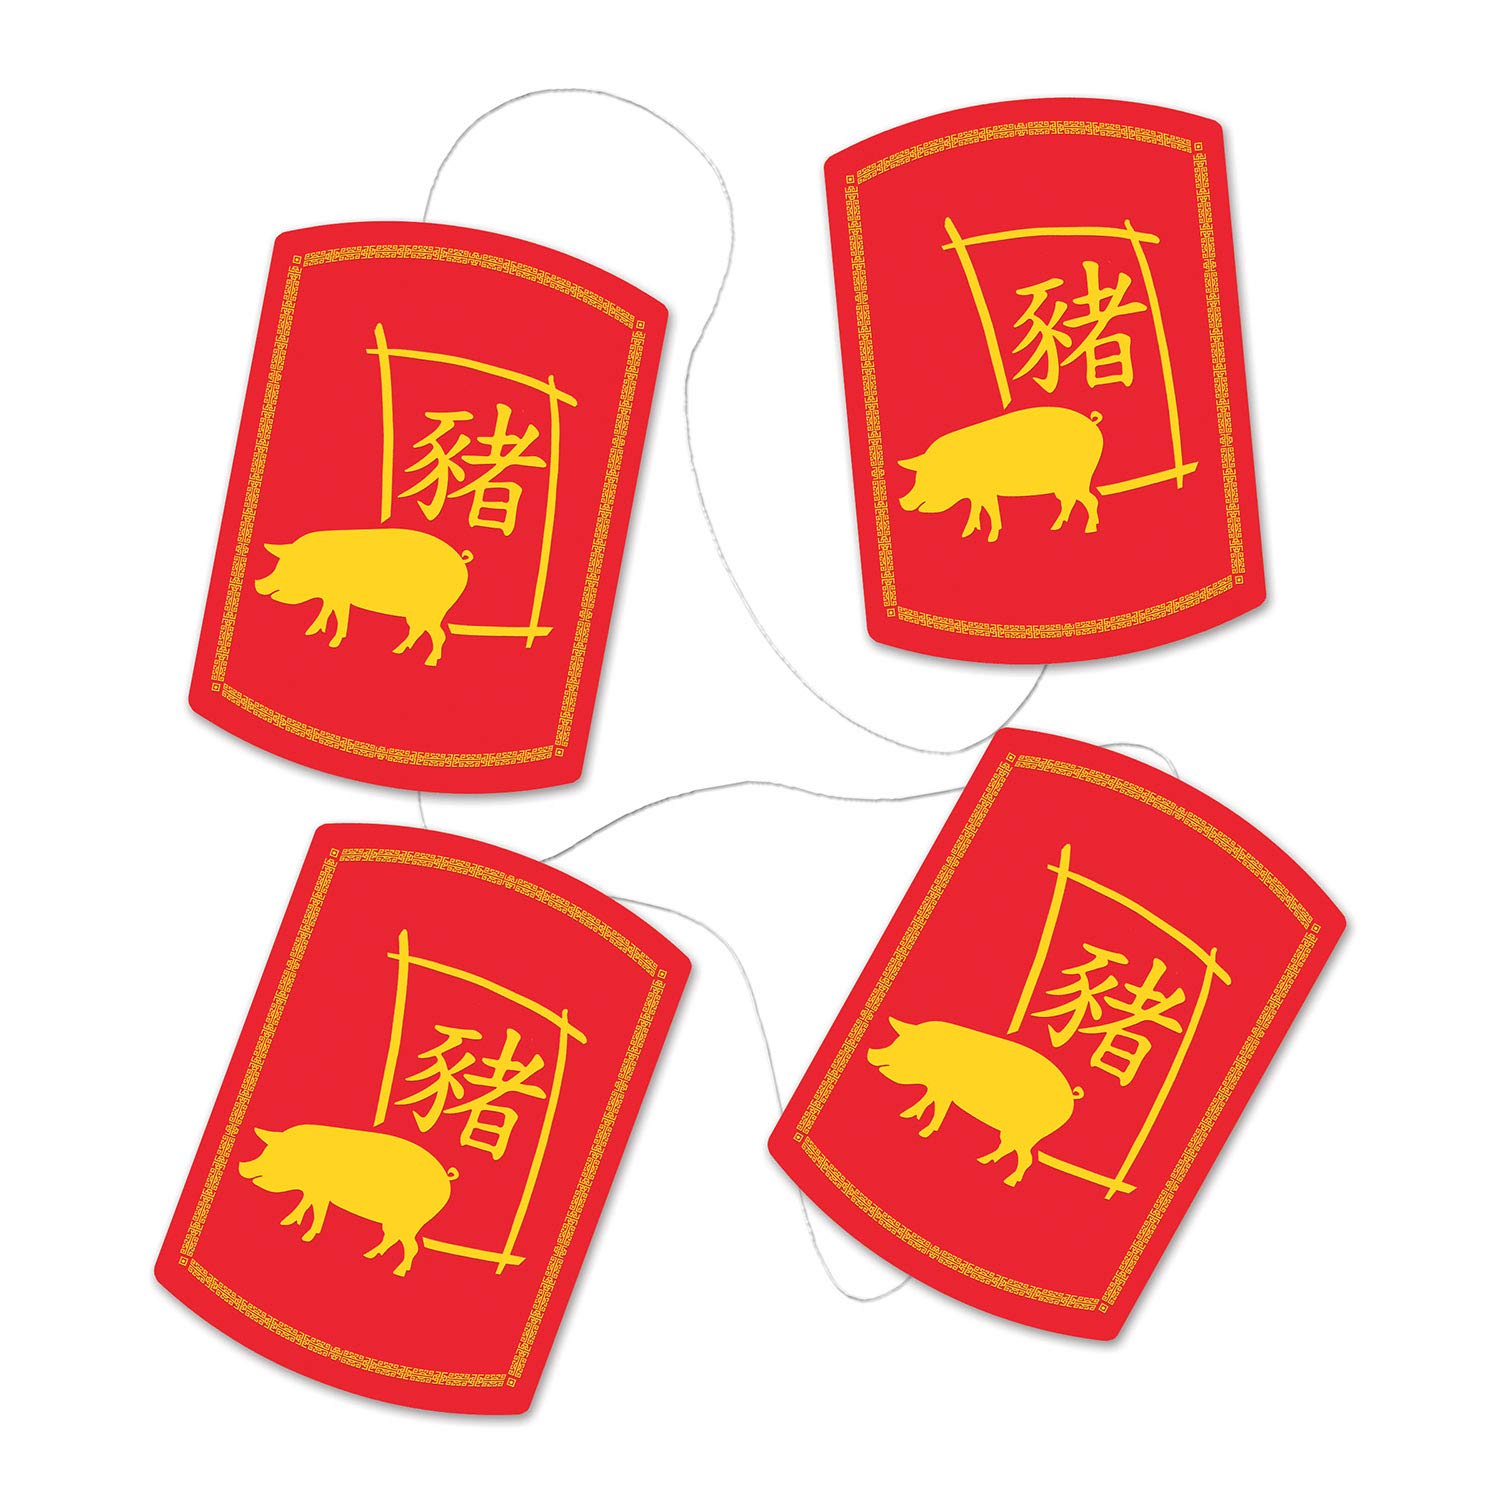 Beistle Asian Party Decoration Year of The Pig, 2019 Year of The Pig Stringer 78 Inch, Pack of 12